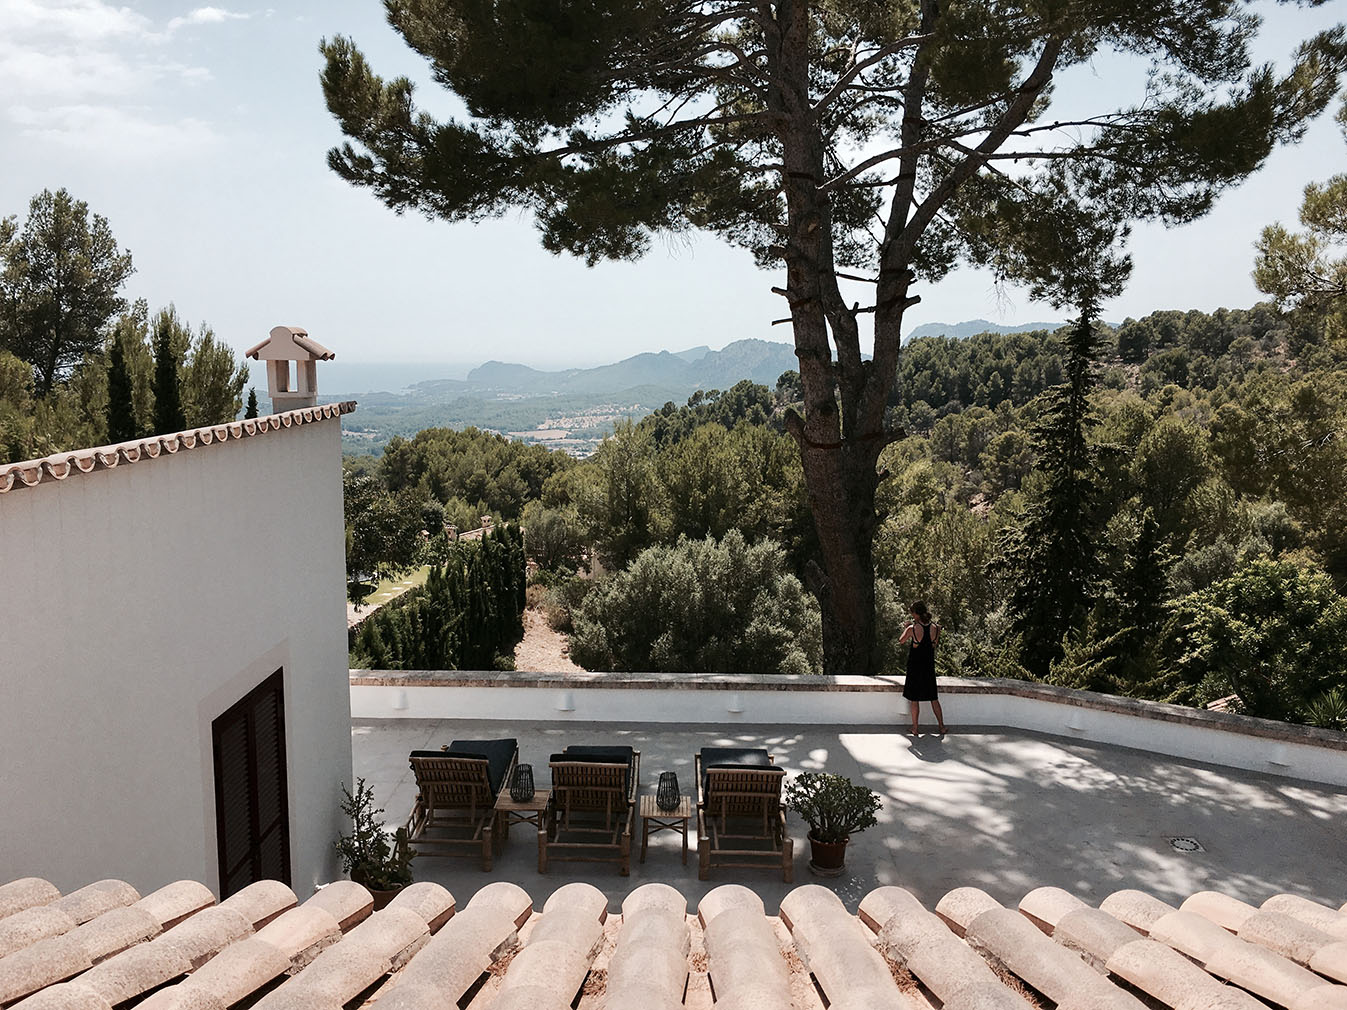 Holiday home of the week: a minimalist Mallorcan villa in the Tramuntana Mountains